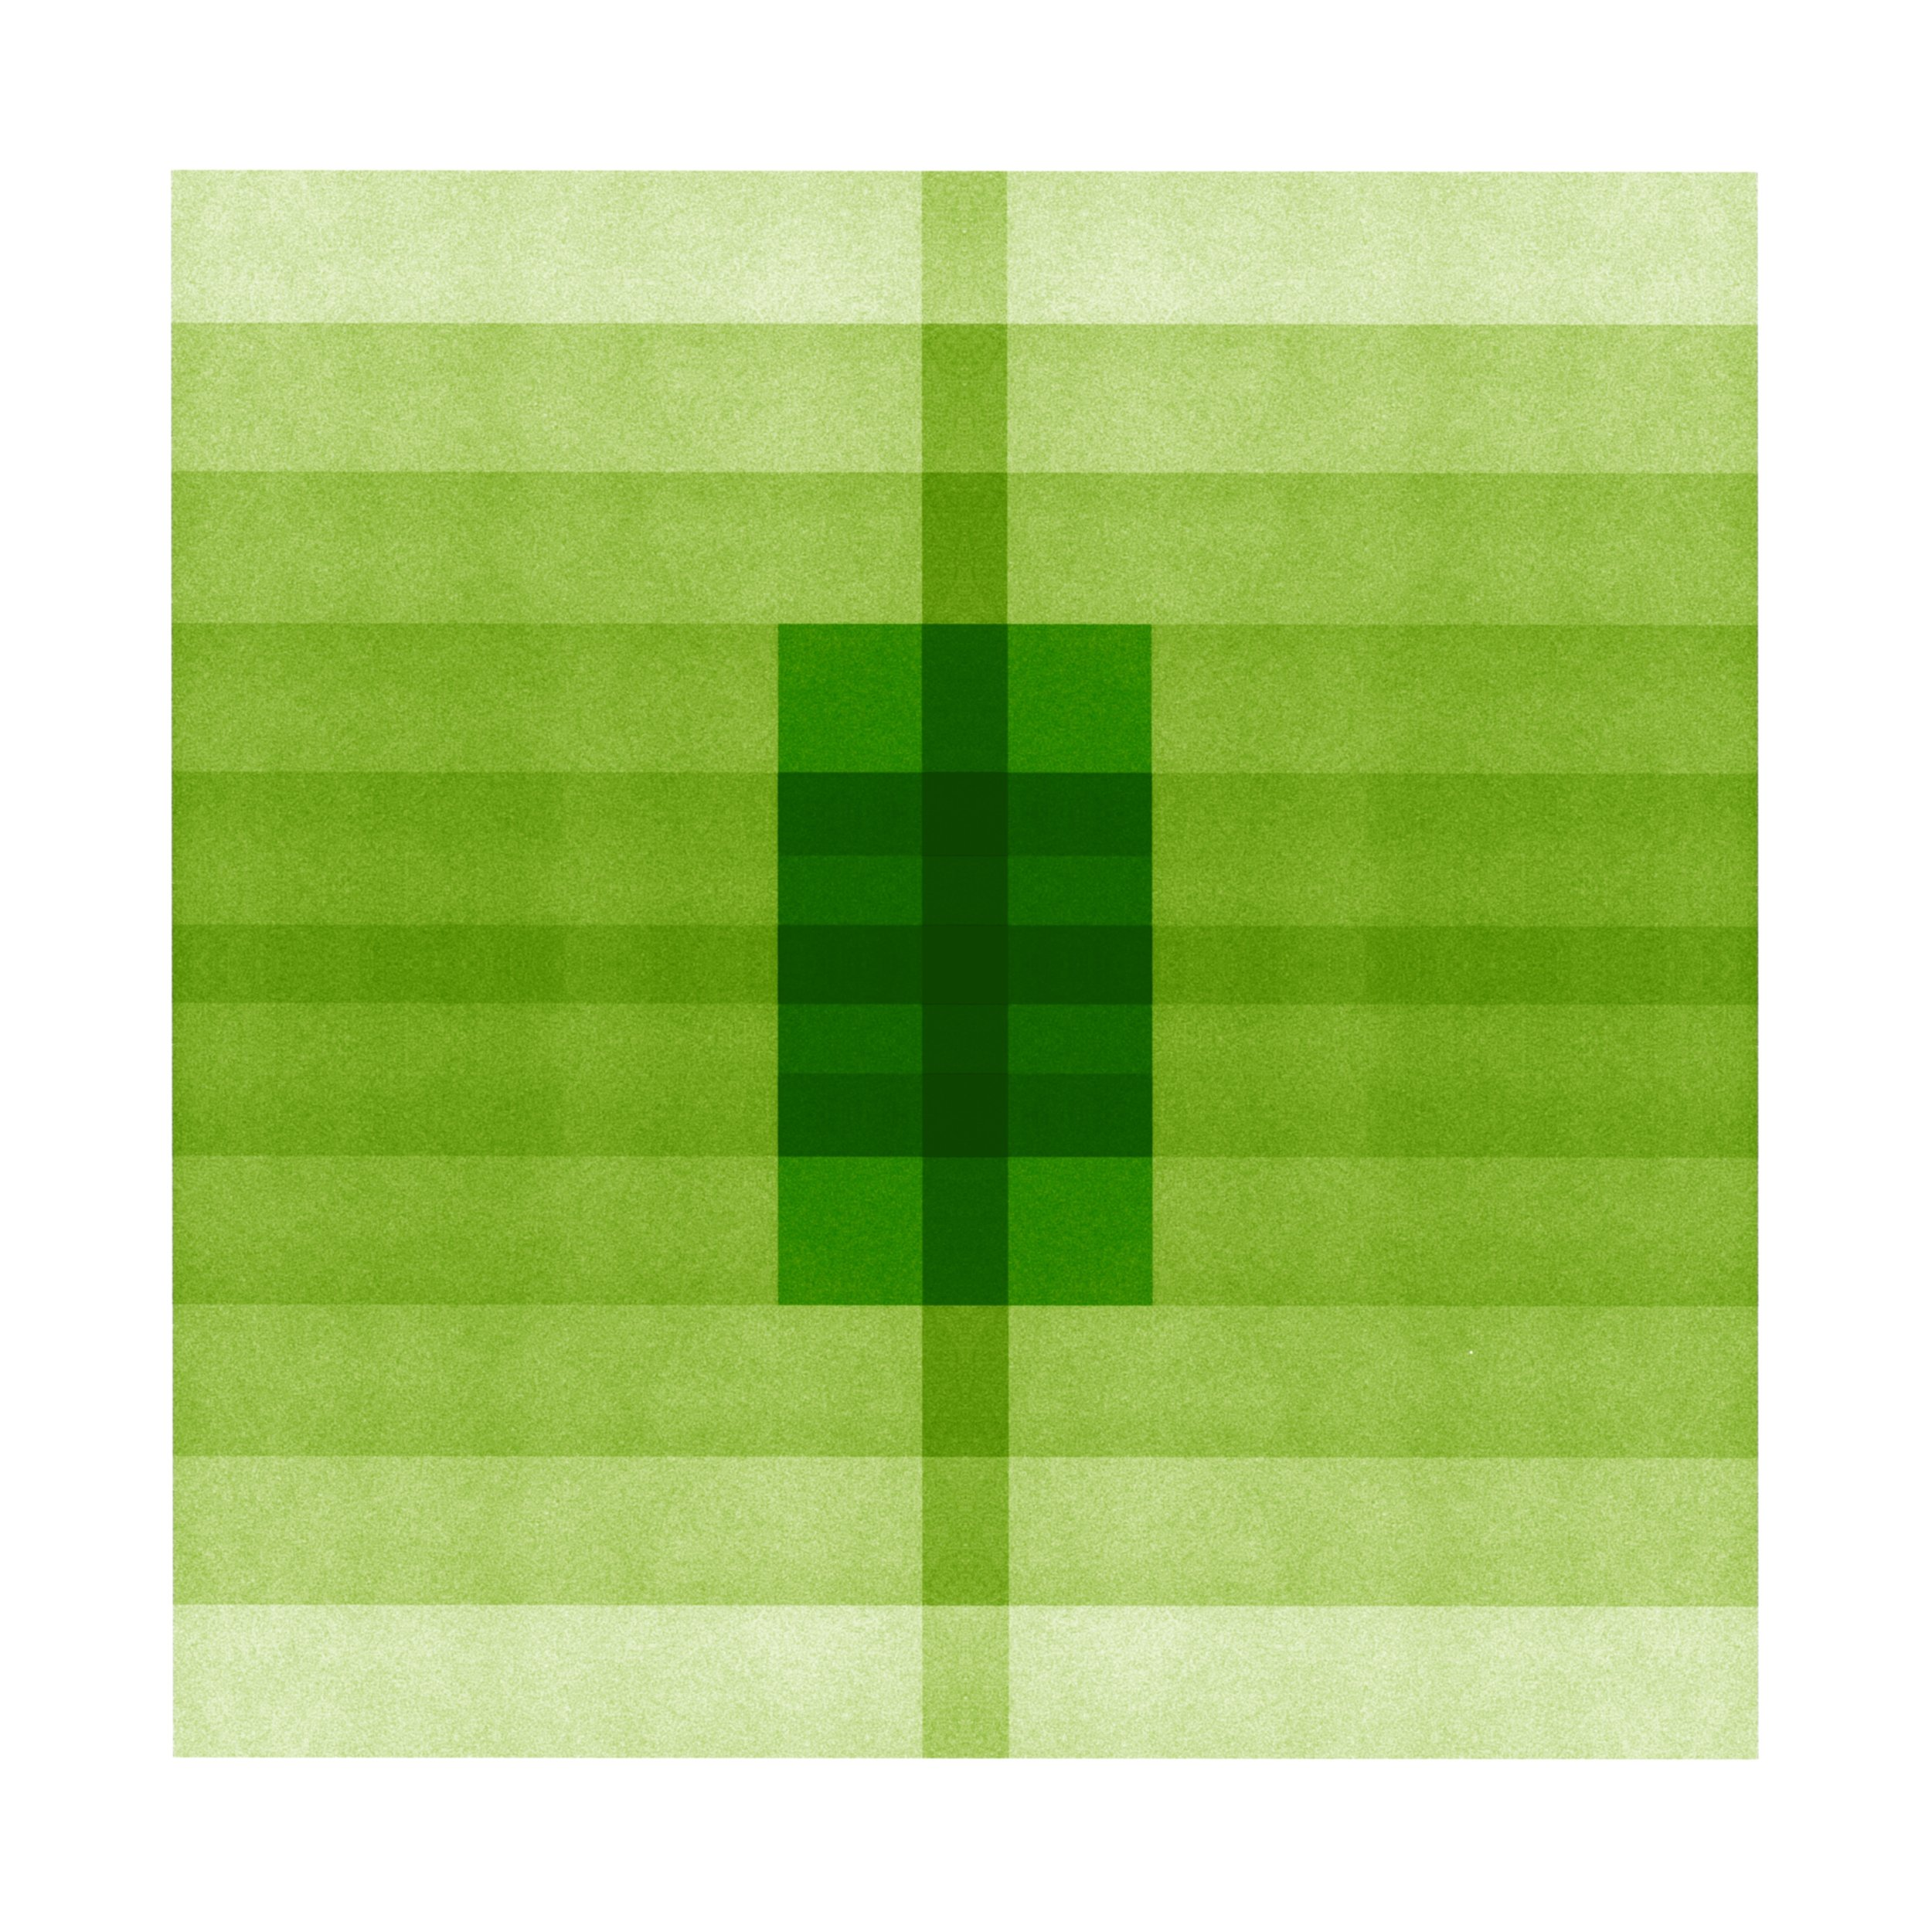 Color Space 29: Grass Green